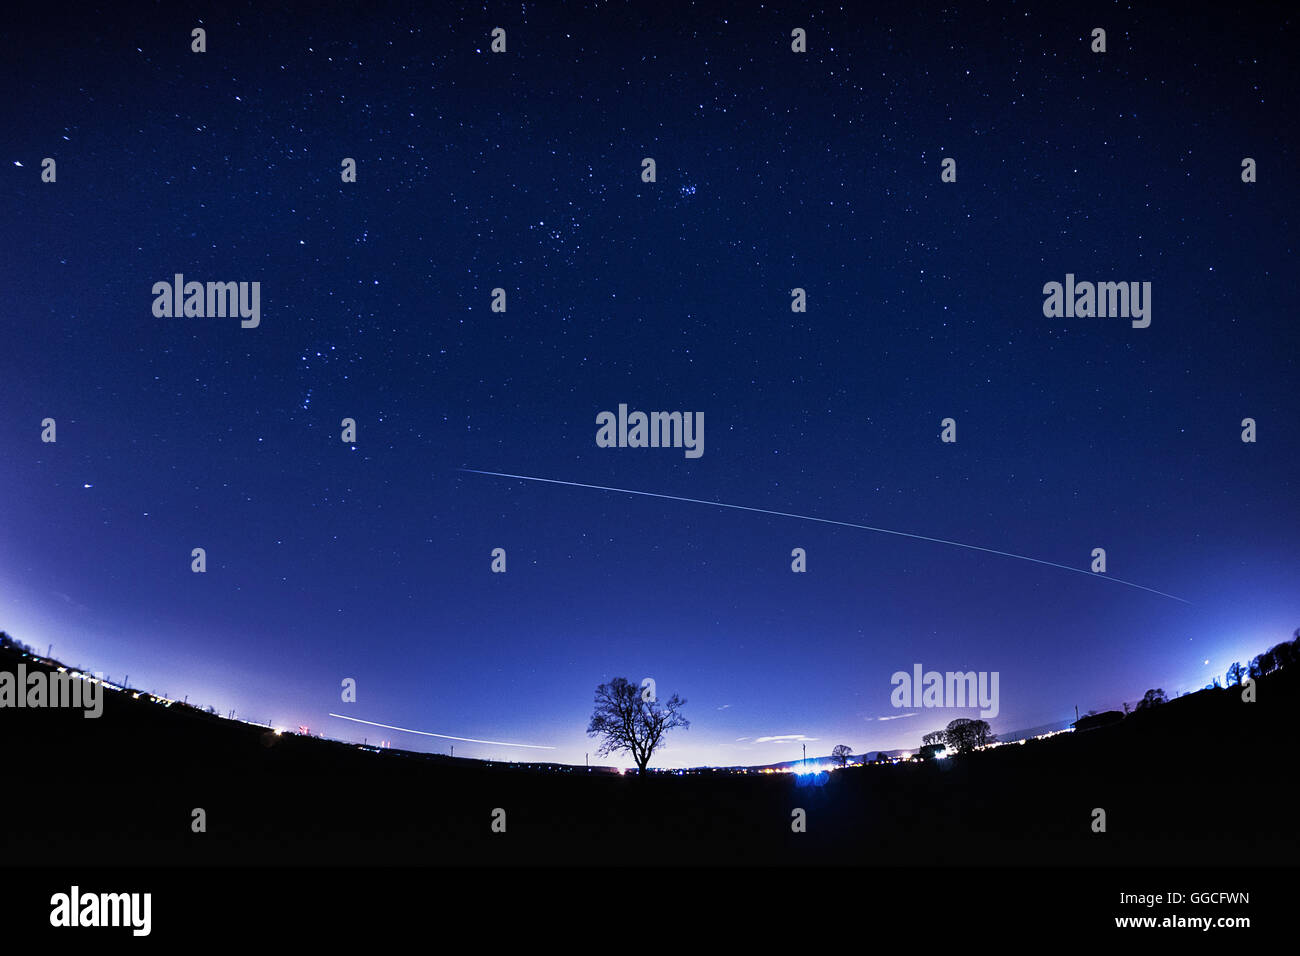 International Space Station (ISS) fly past in a clear starry sky - Stock Image